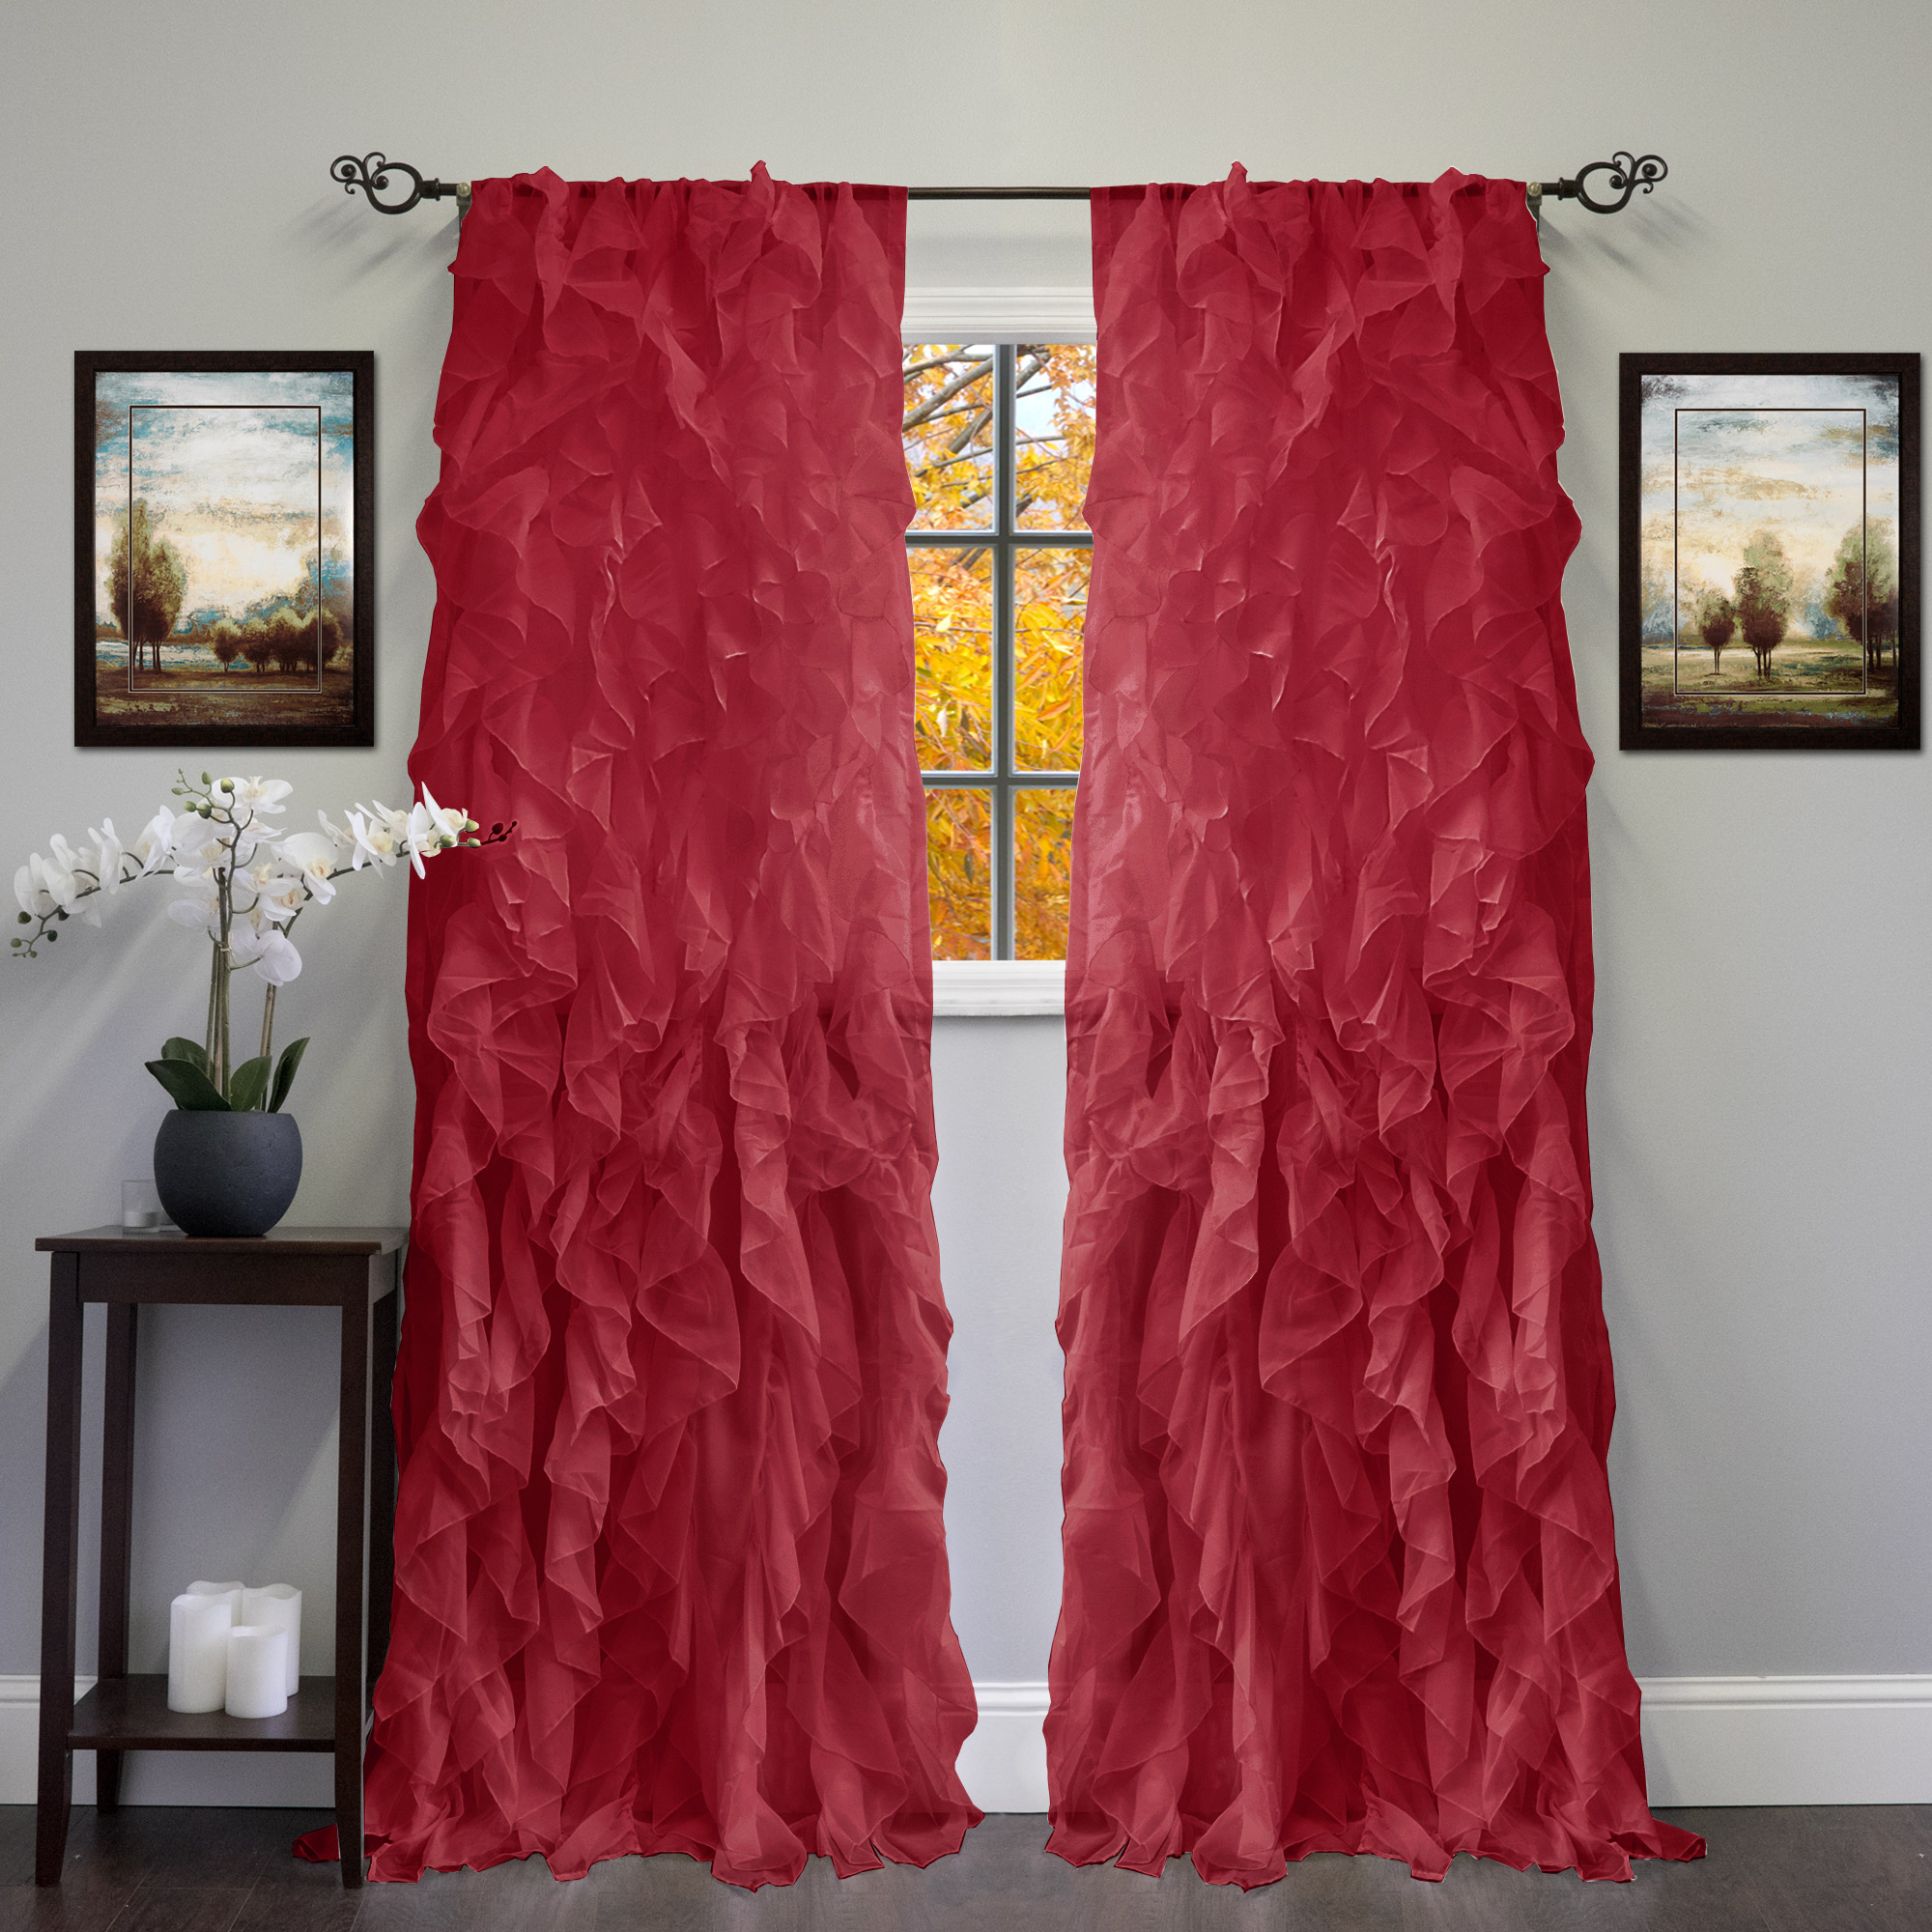 "Chic Sheer Voile Vertical Ruffled Tier Window Curtain Single Panel 50"" X 84"" For Sheer Voile Ruffled Tier Window Curtain Panels (View 7 of 20)"